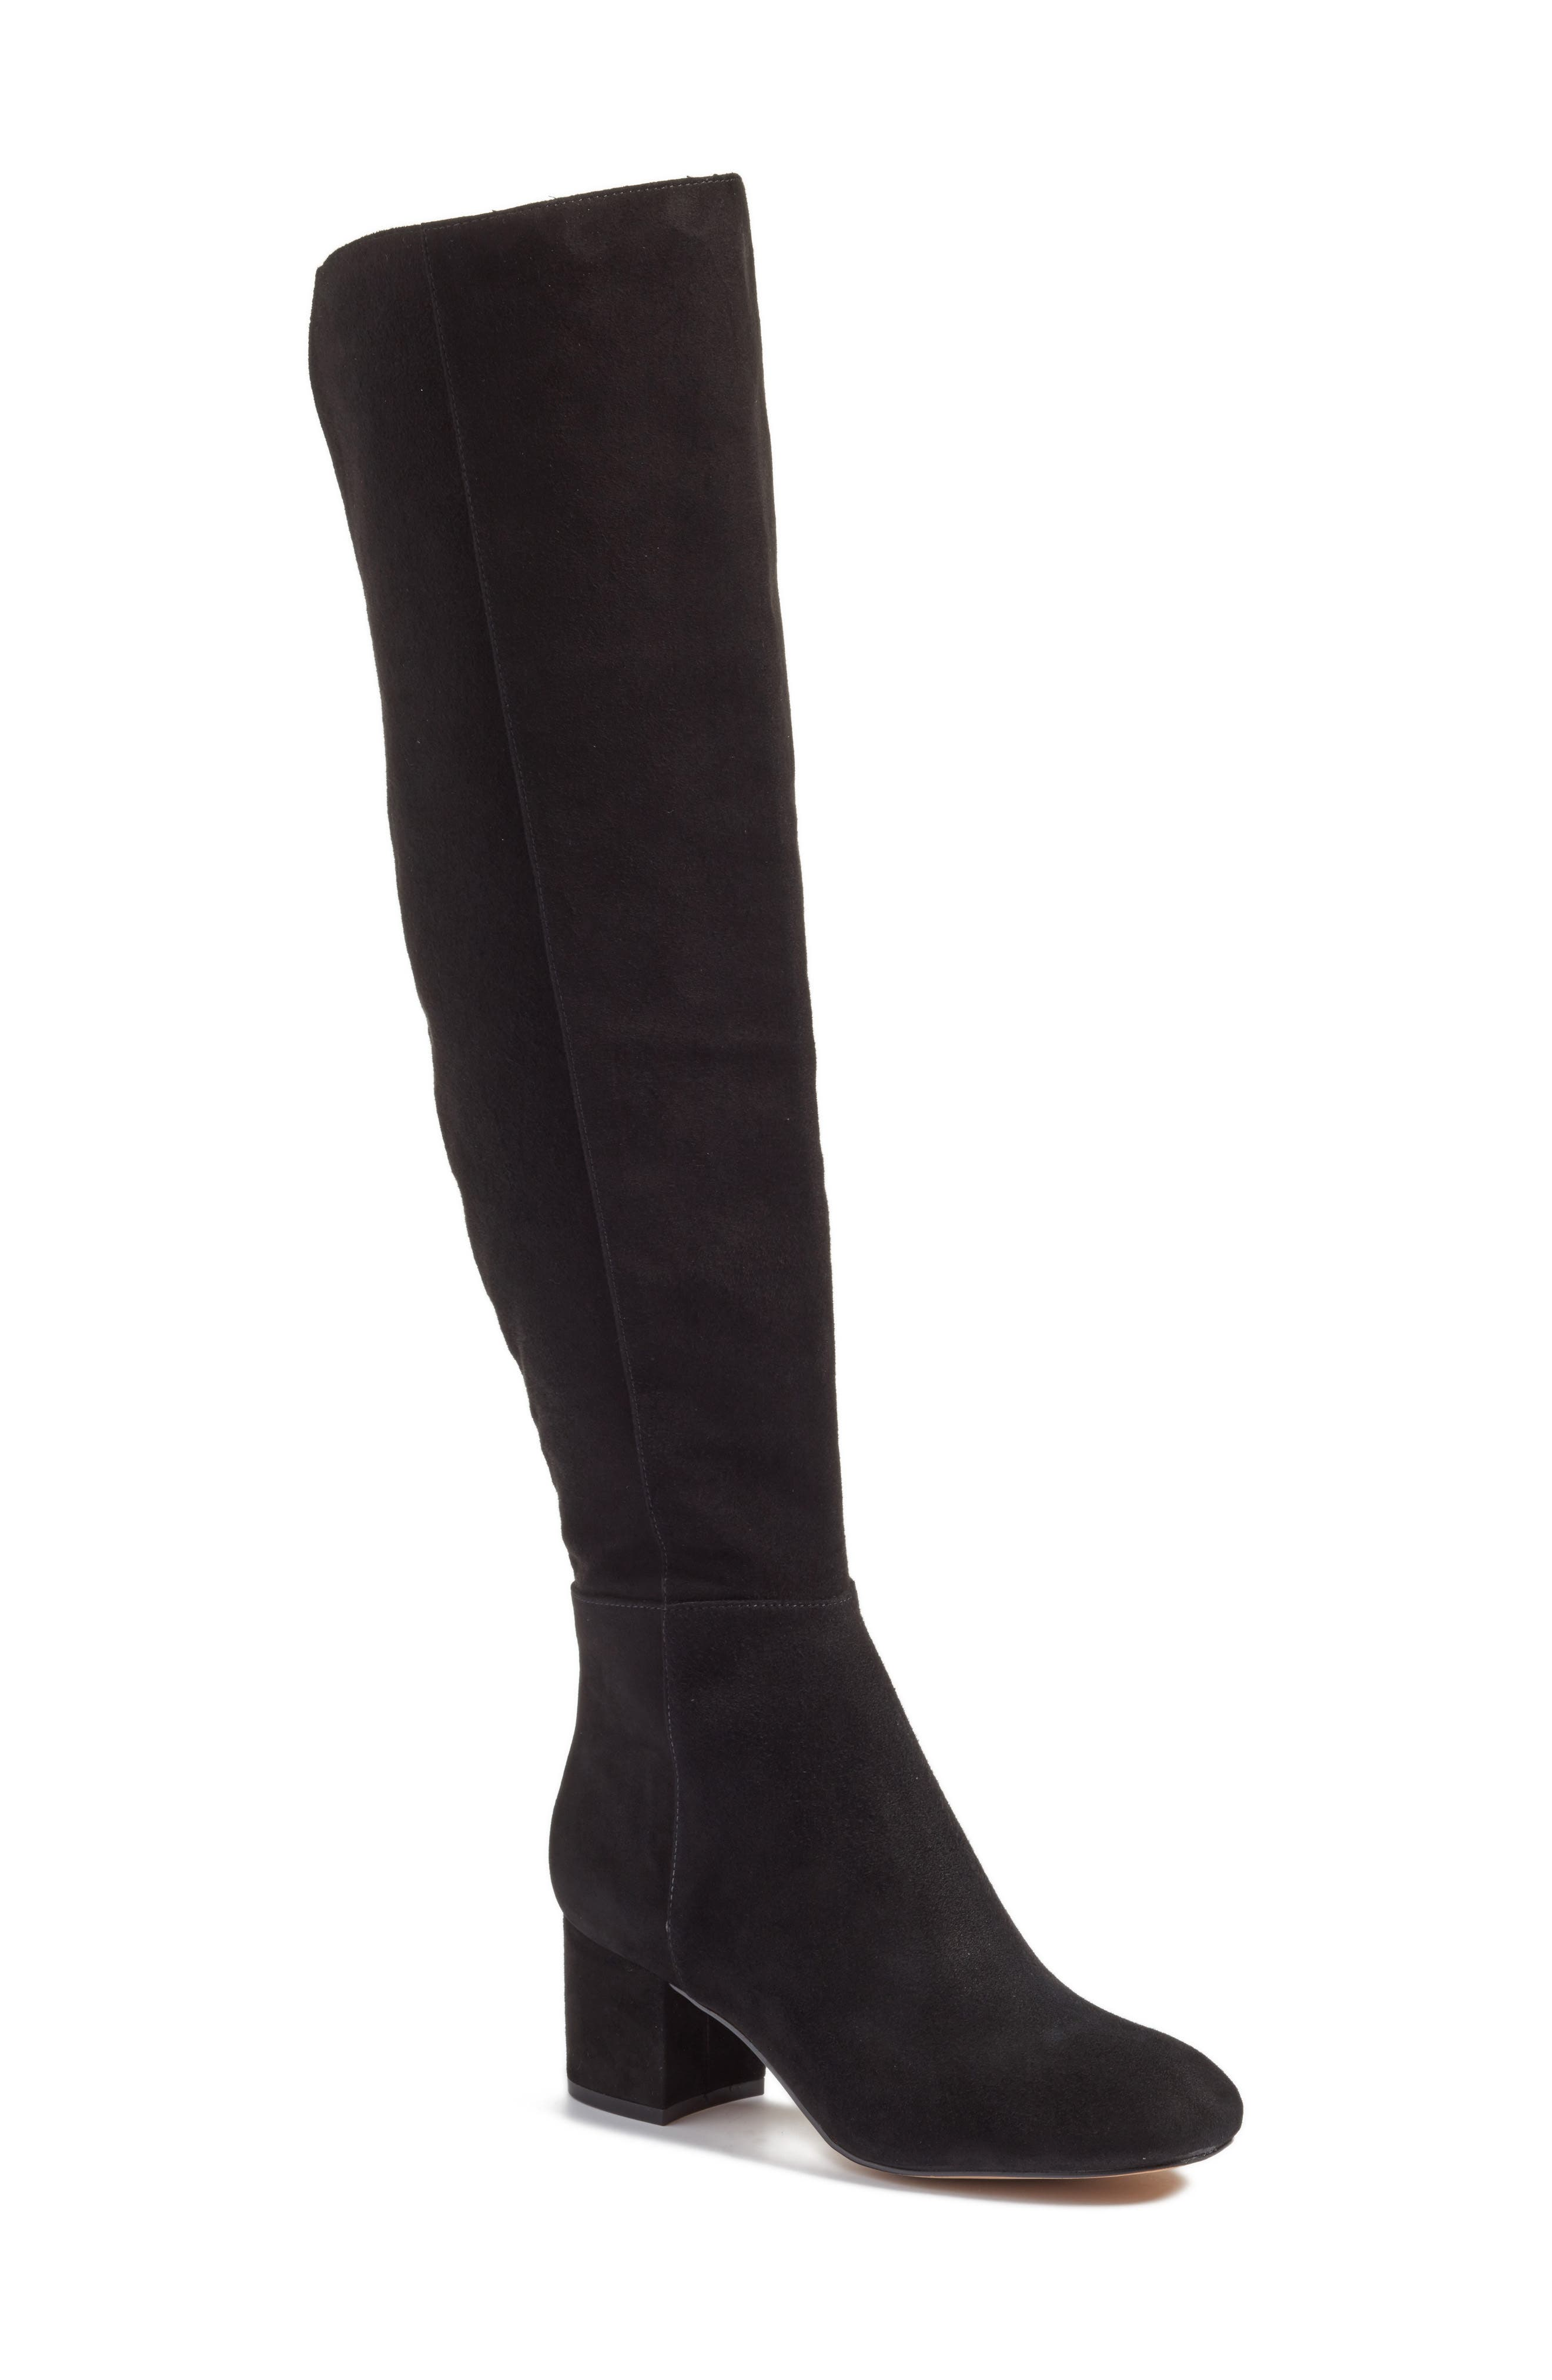 Scarlett Over the Knee Boot,                             Main thumbnail 1, color,                             001